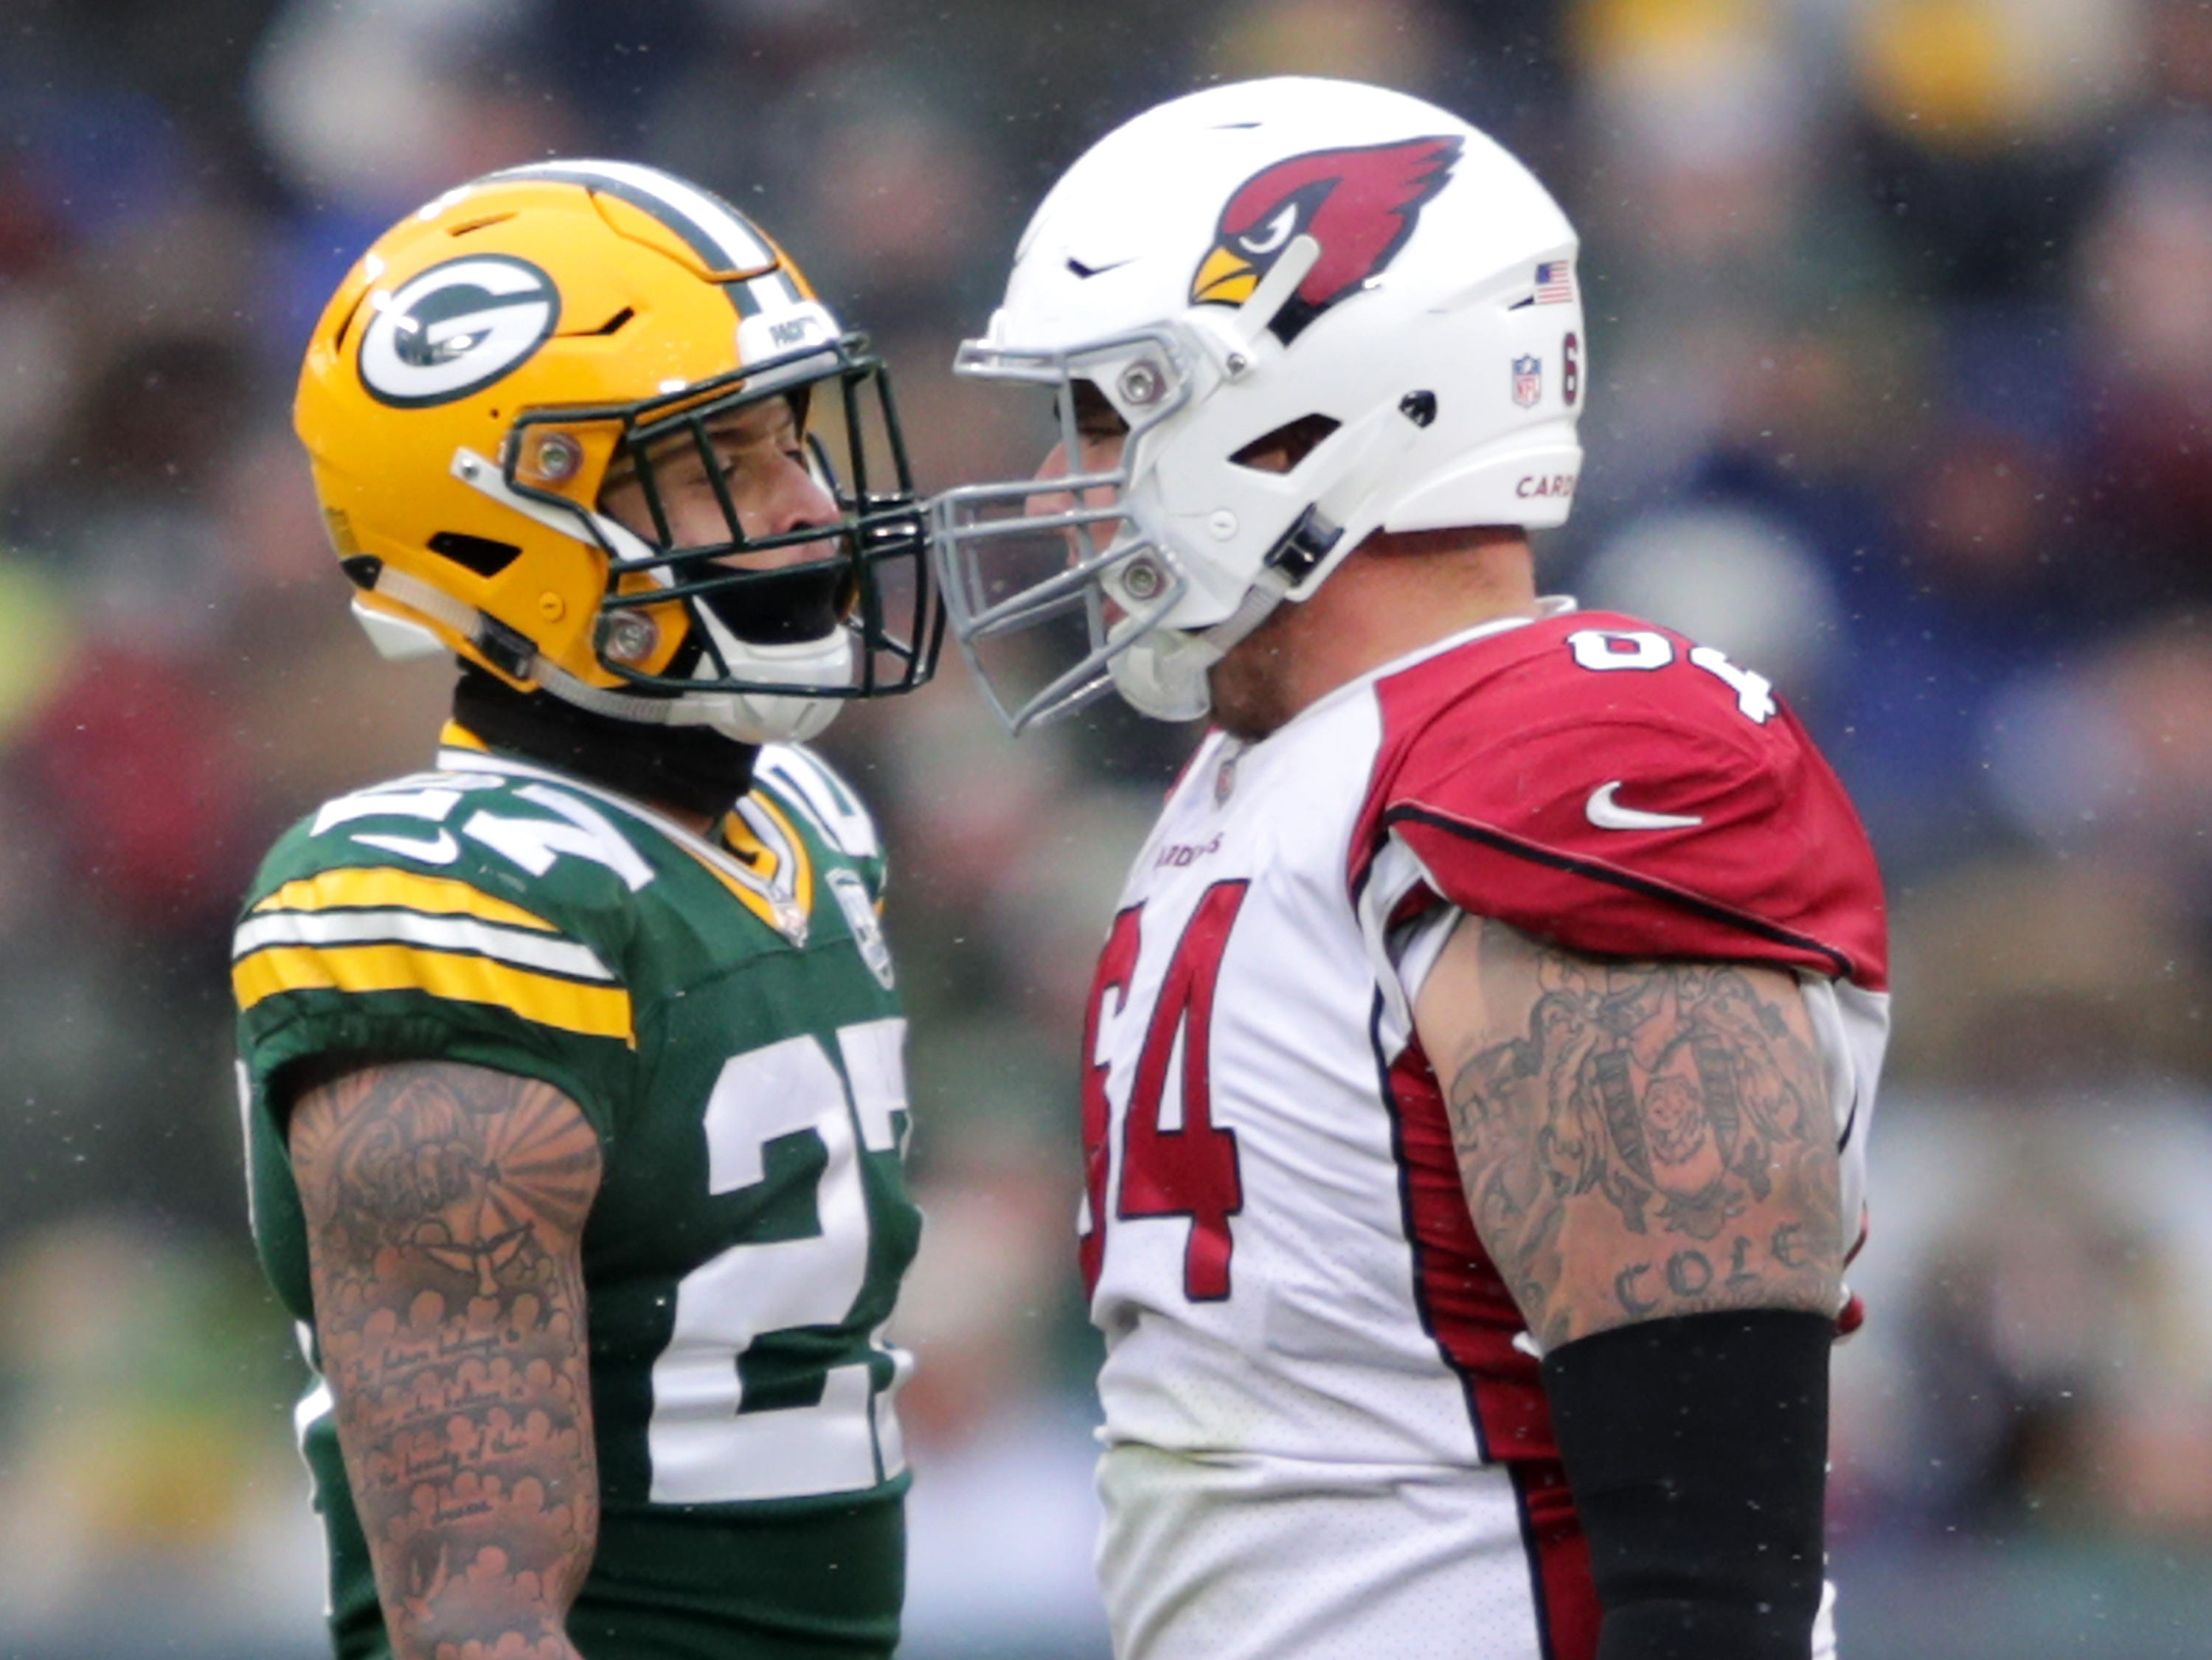 Green Bay Packers defensive back Josh Jones against Arizona Cardinals center Mason Cole during their football game on Sunday, December 2, 2018, at Lambeau Field in Green Bay, Wis. Arizona defeated Green Bay 20 to 17.